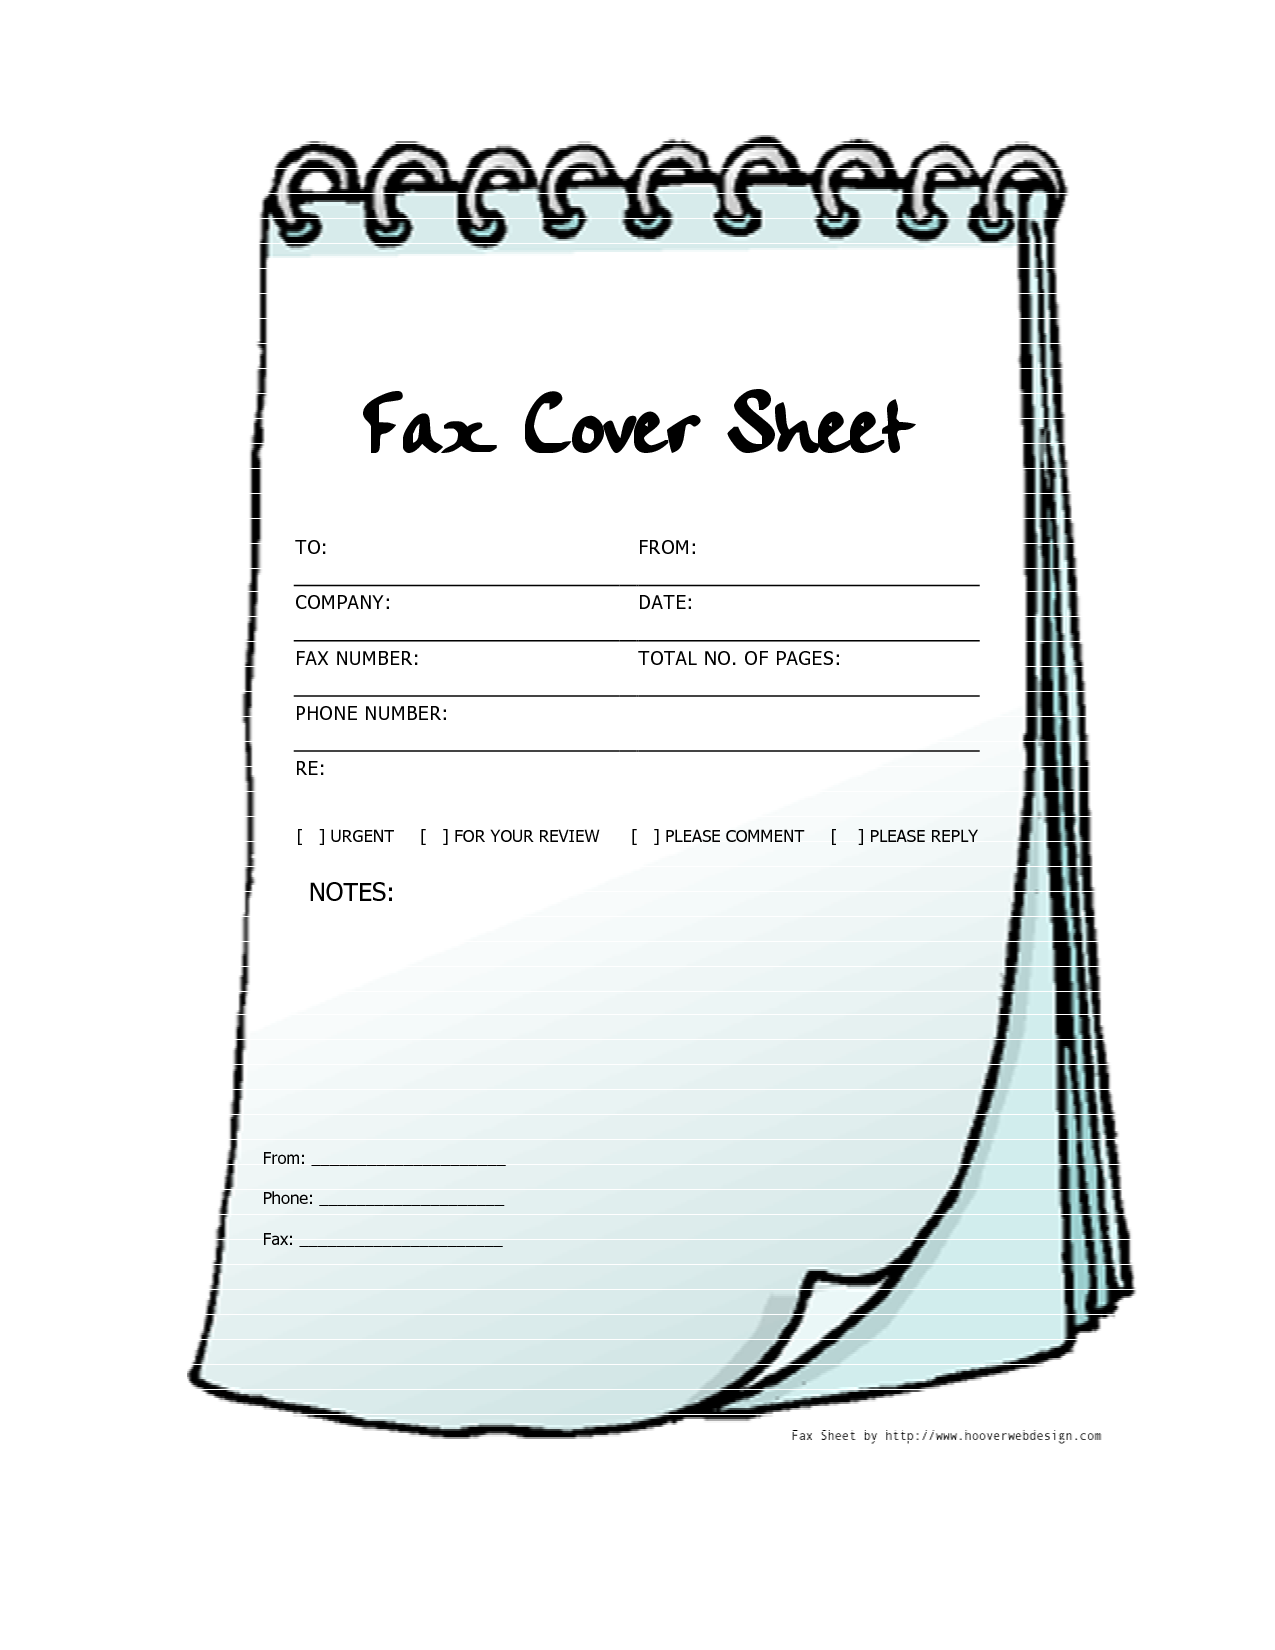 Free Fax Cover Sheet Template Word 2010 from www.newdesignfile.com